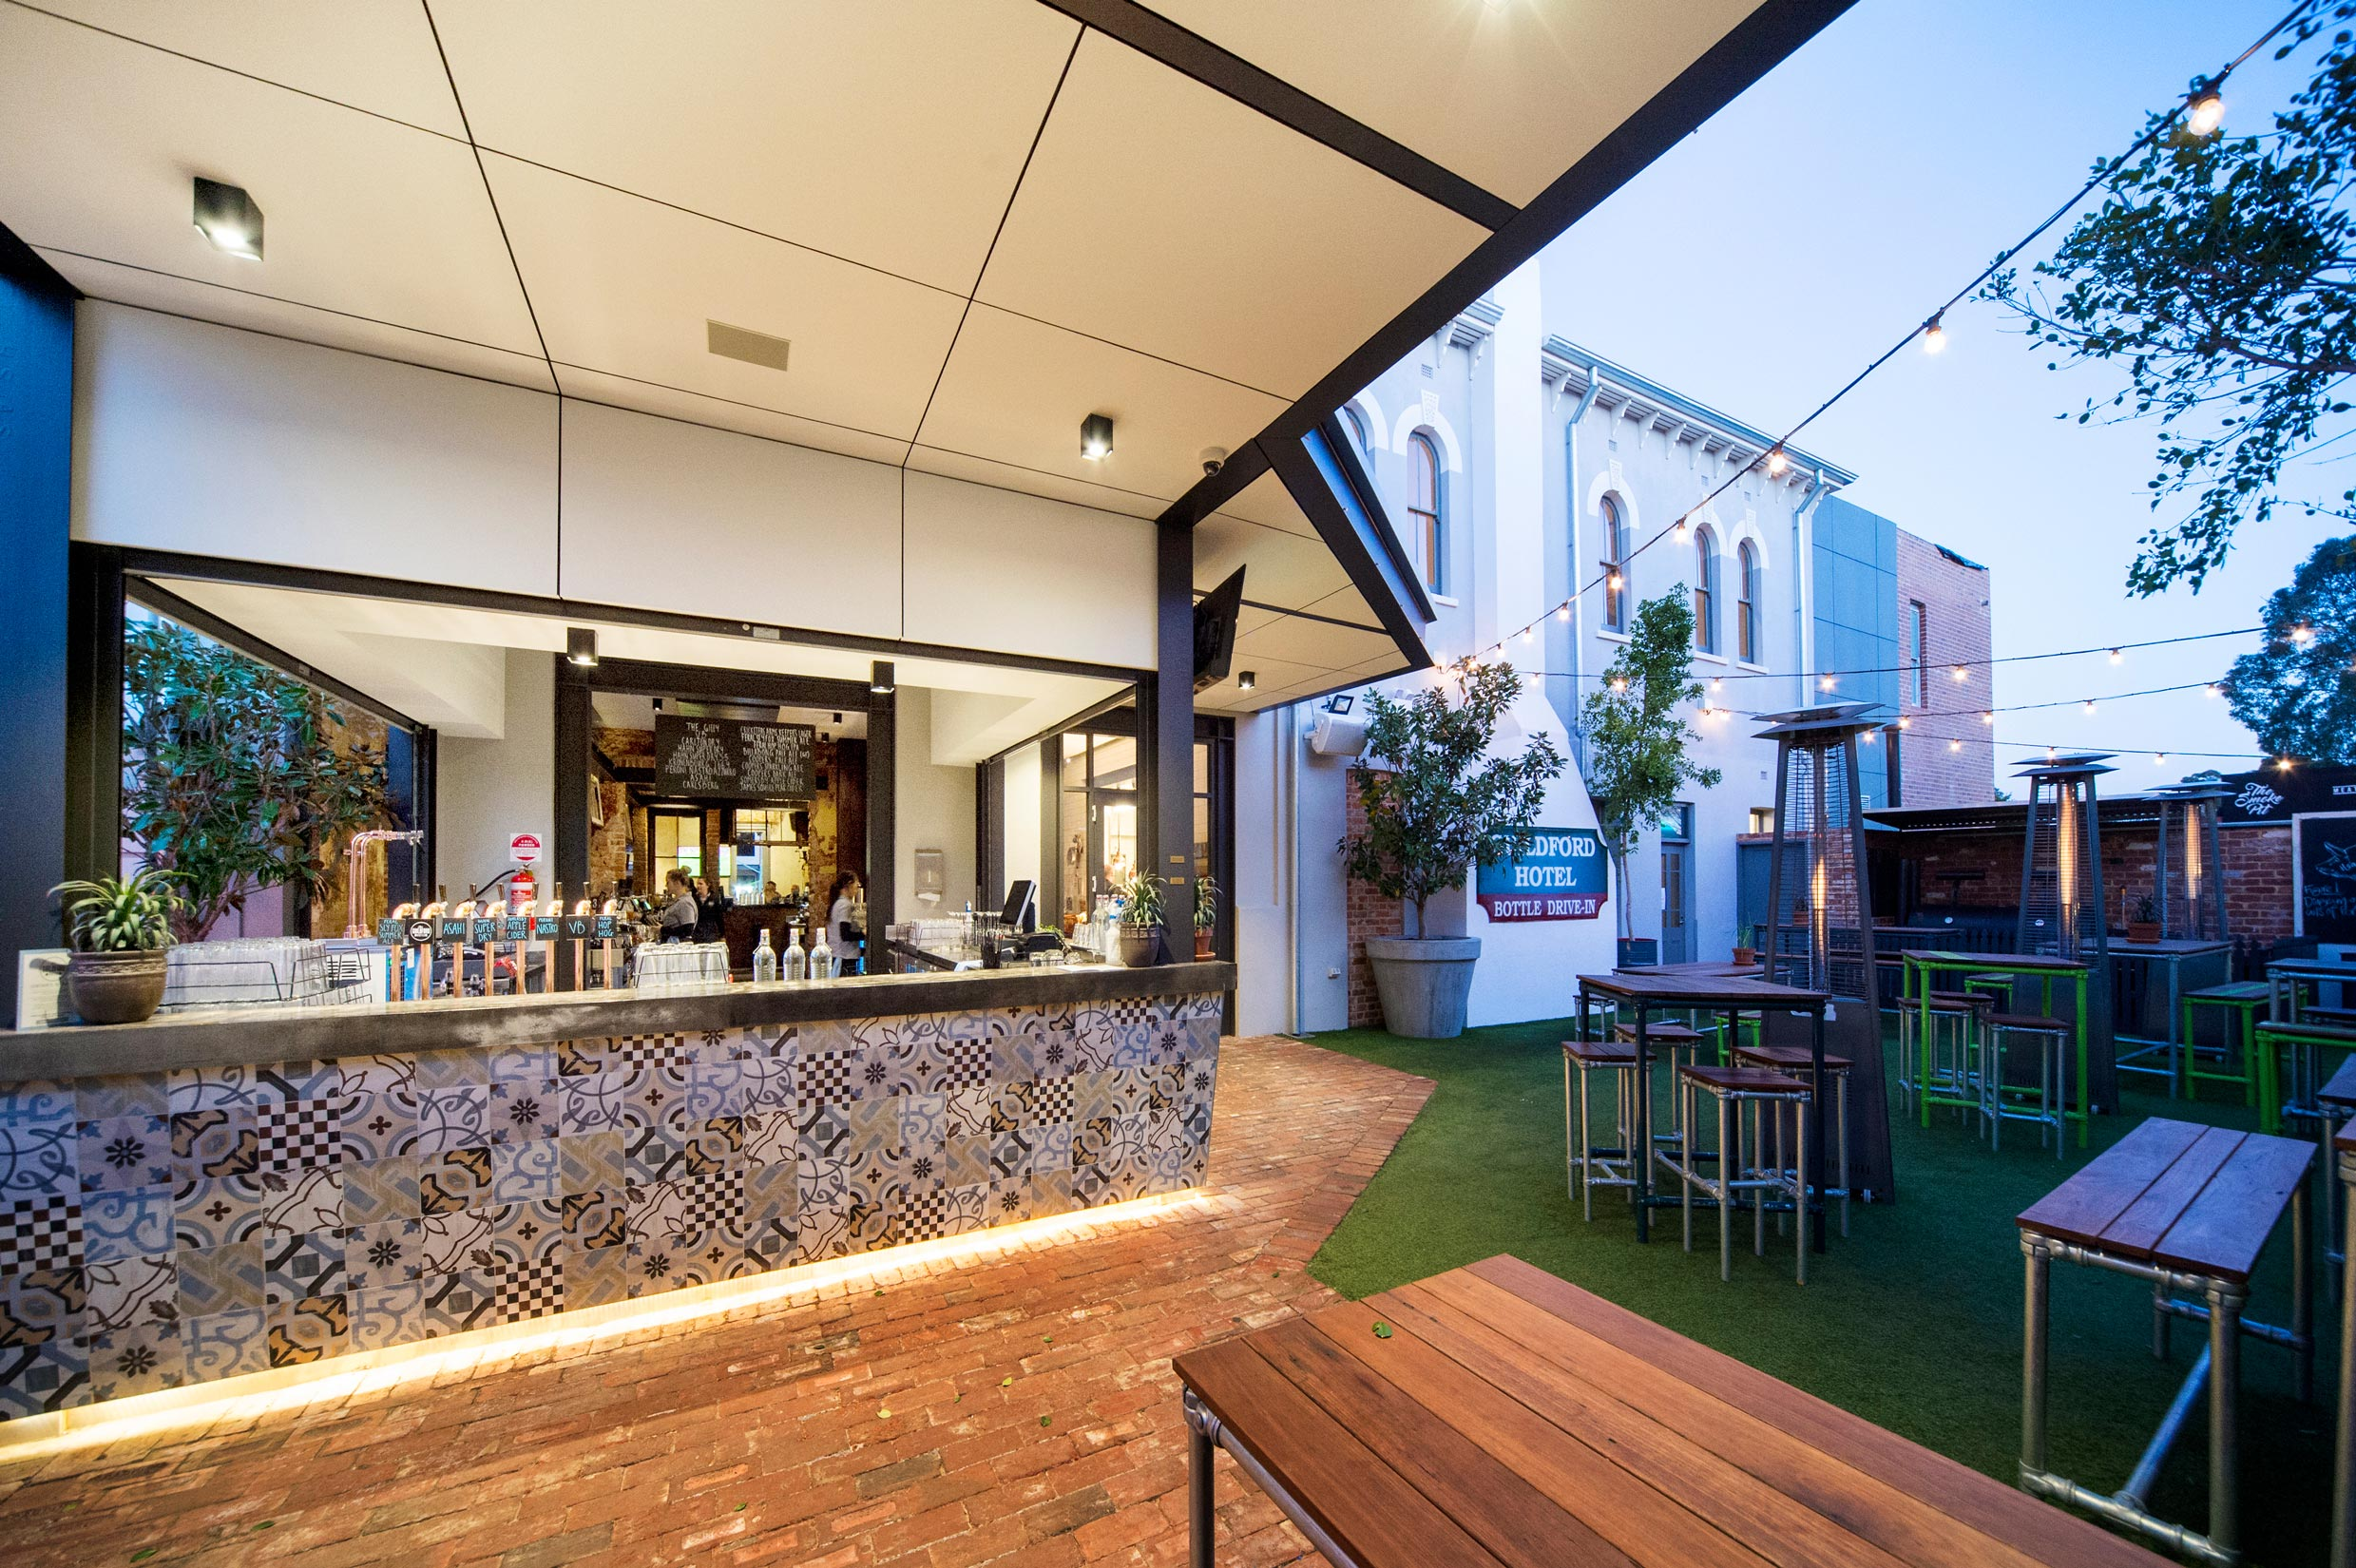 Beer garden outdoor bar with grass and fairy lights at the Guildford Hotel